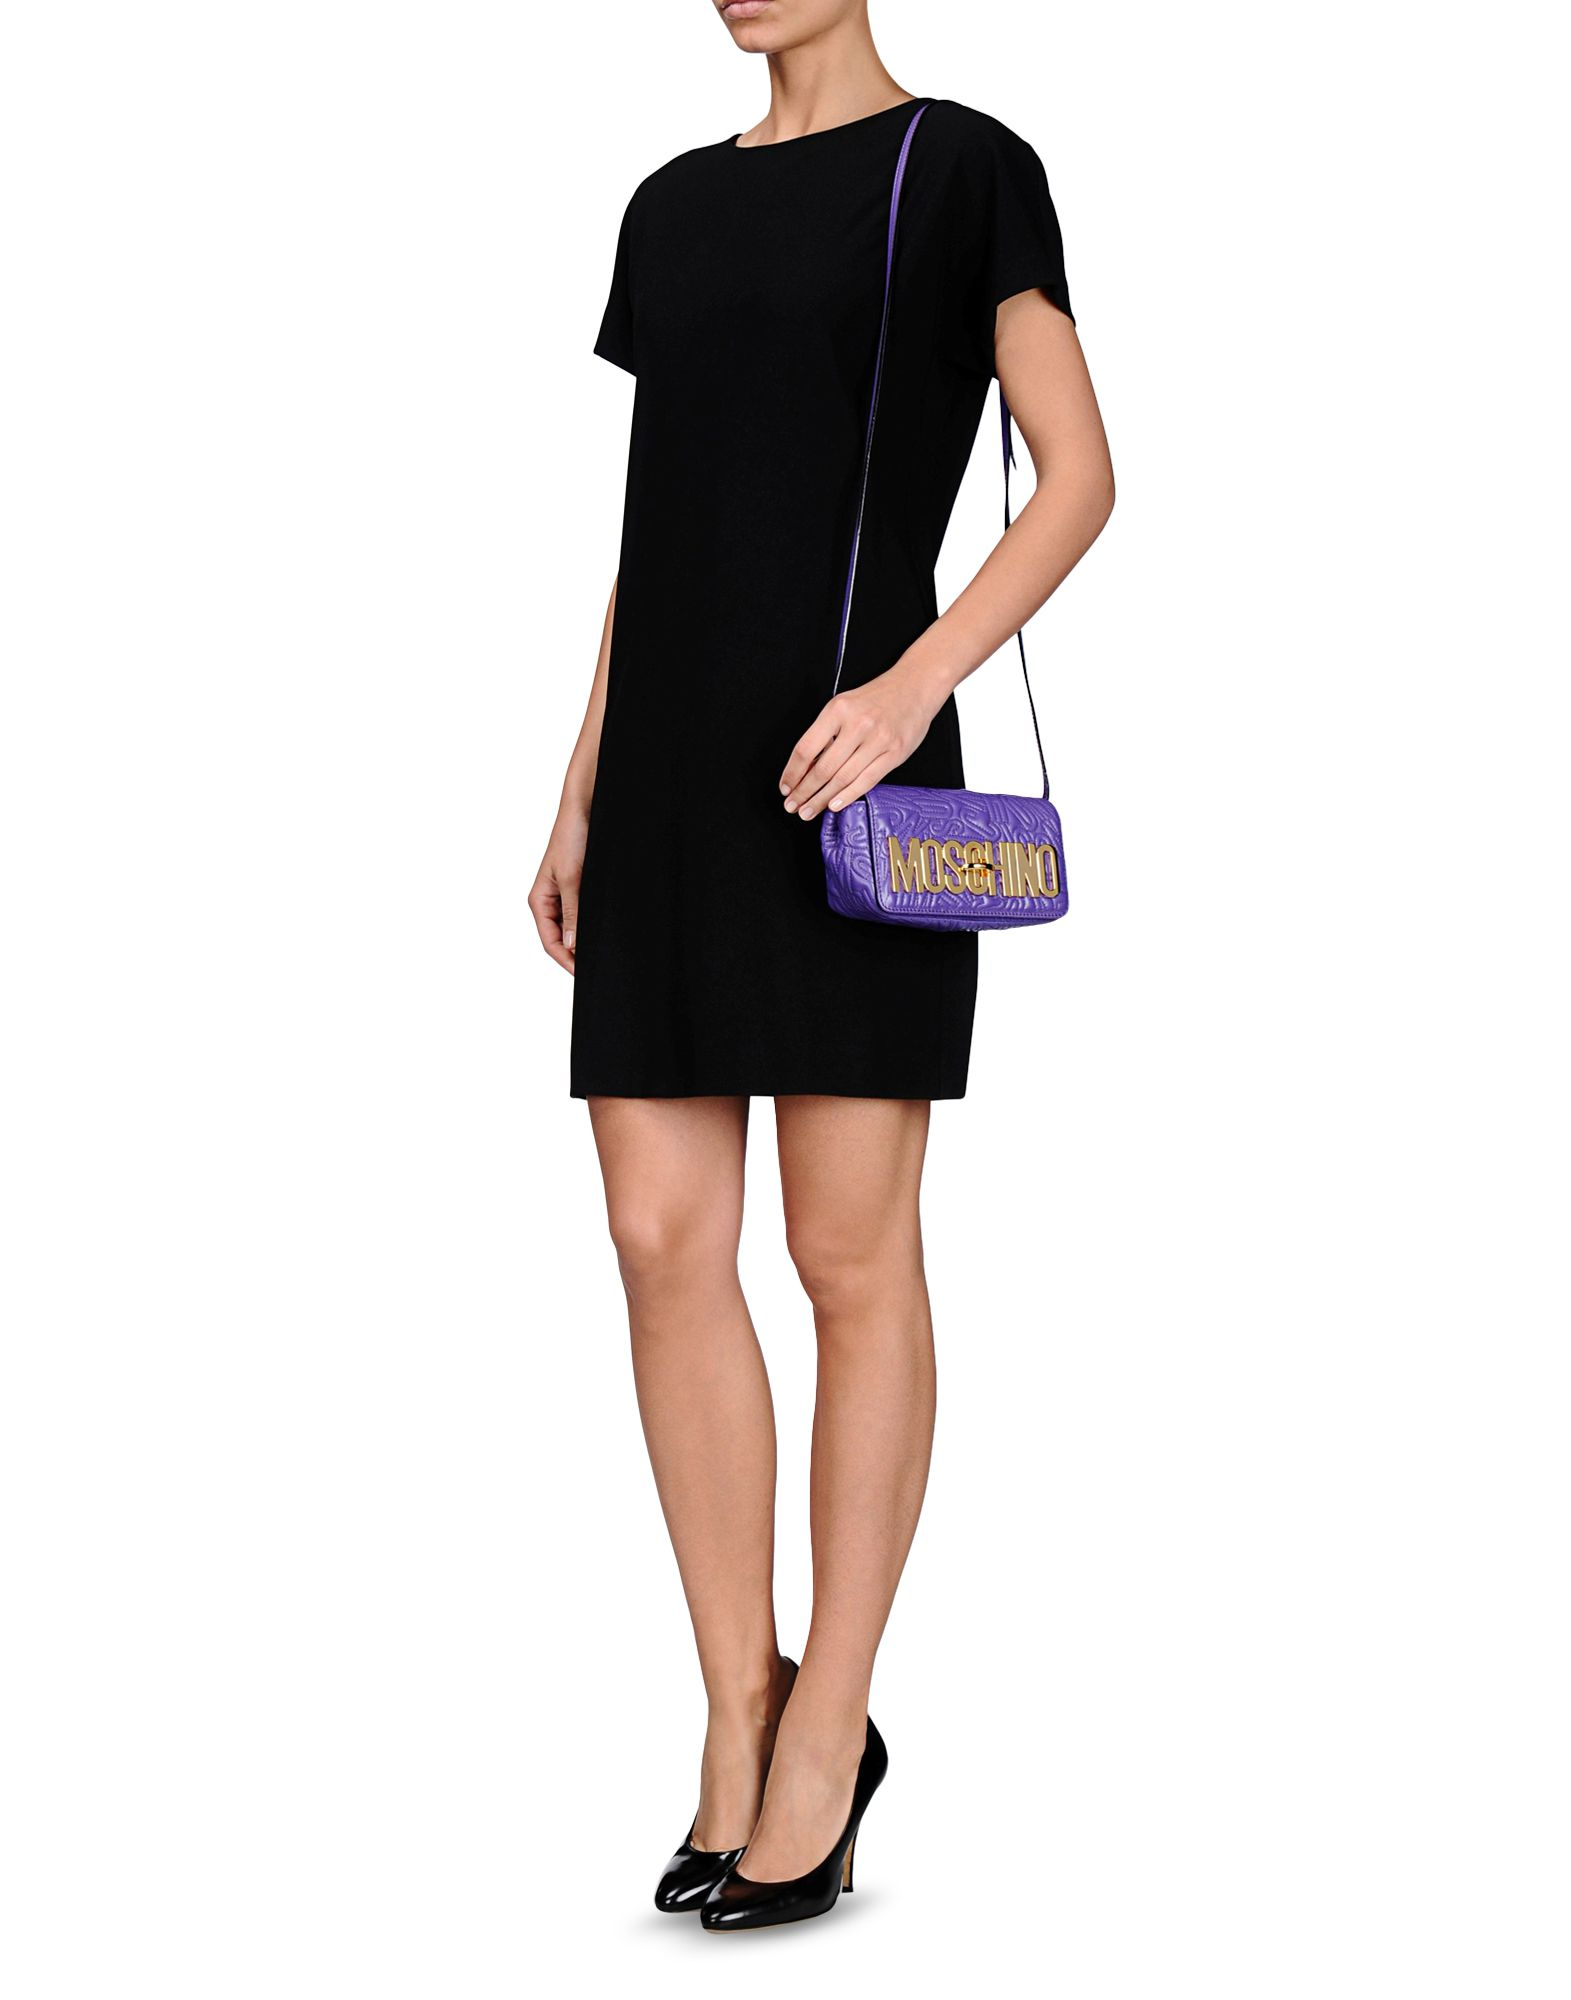 Moschino Small Leather Bag In Purple Lyst